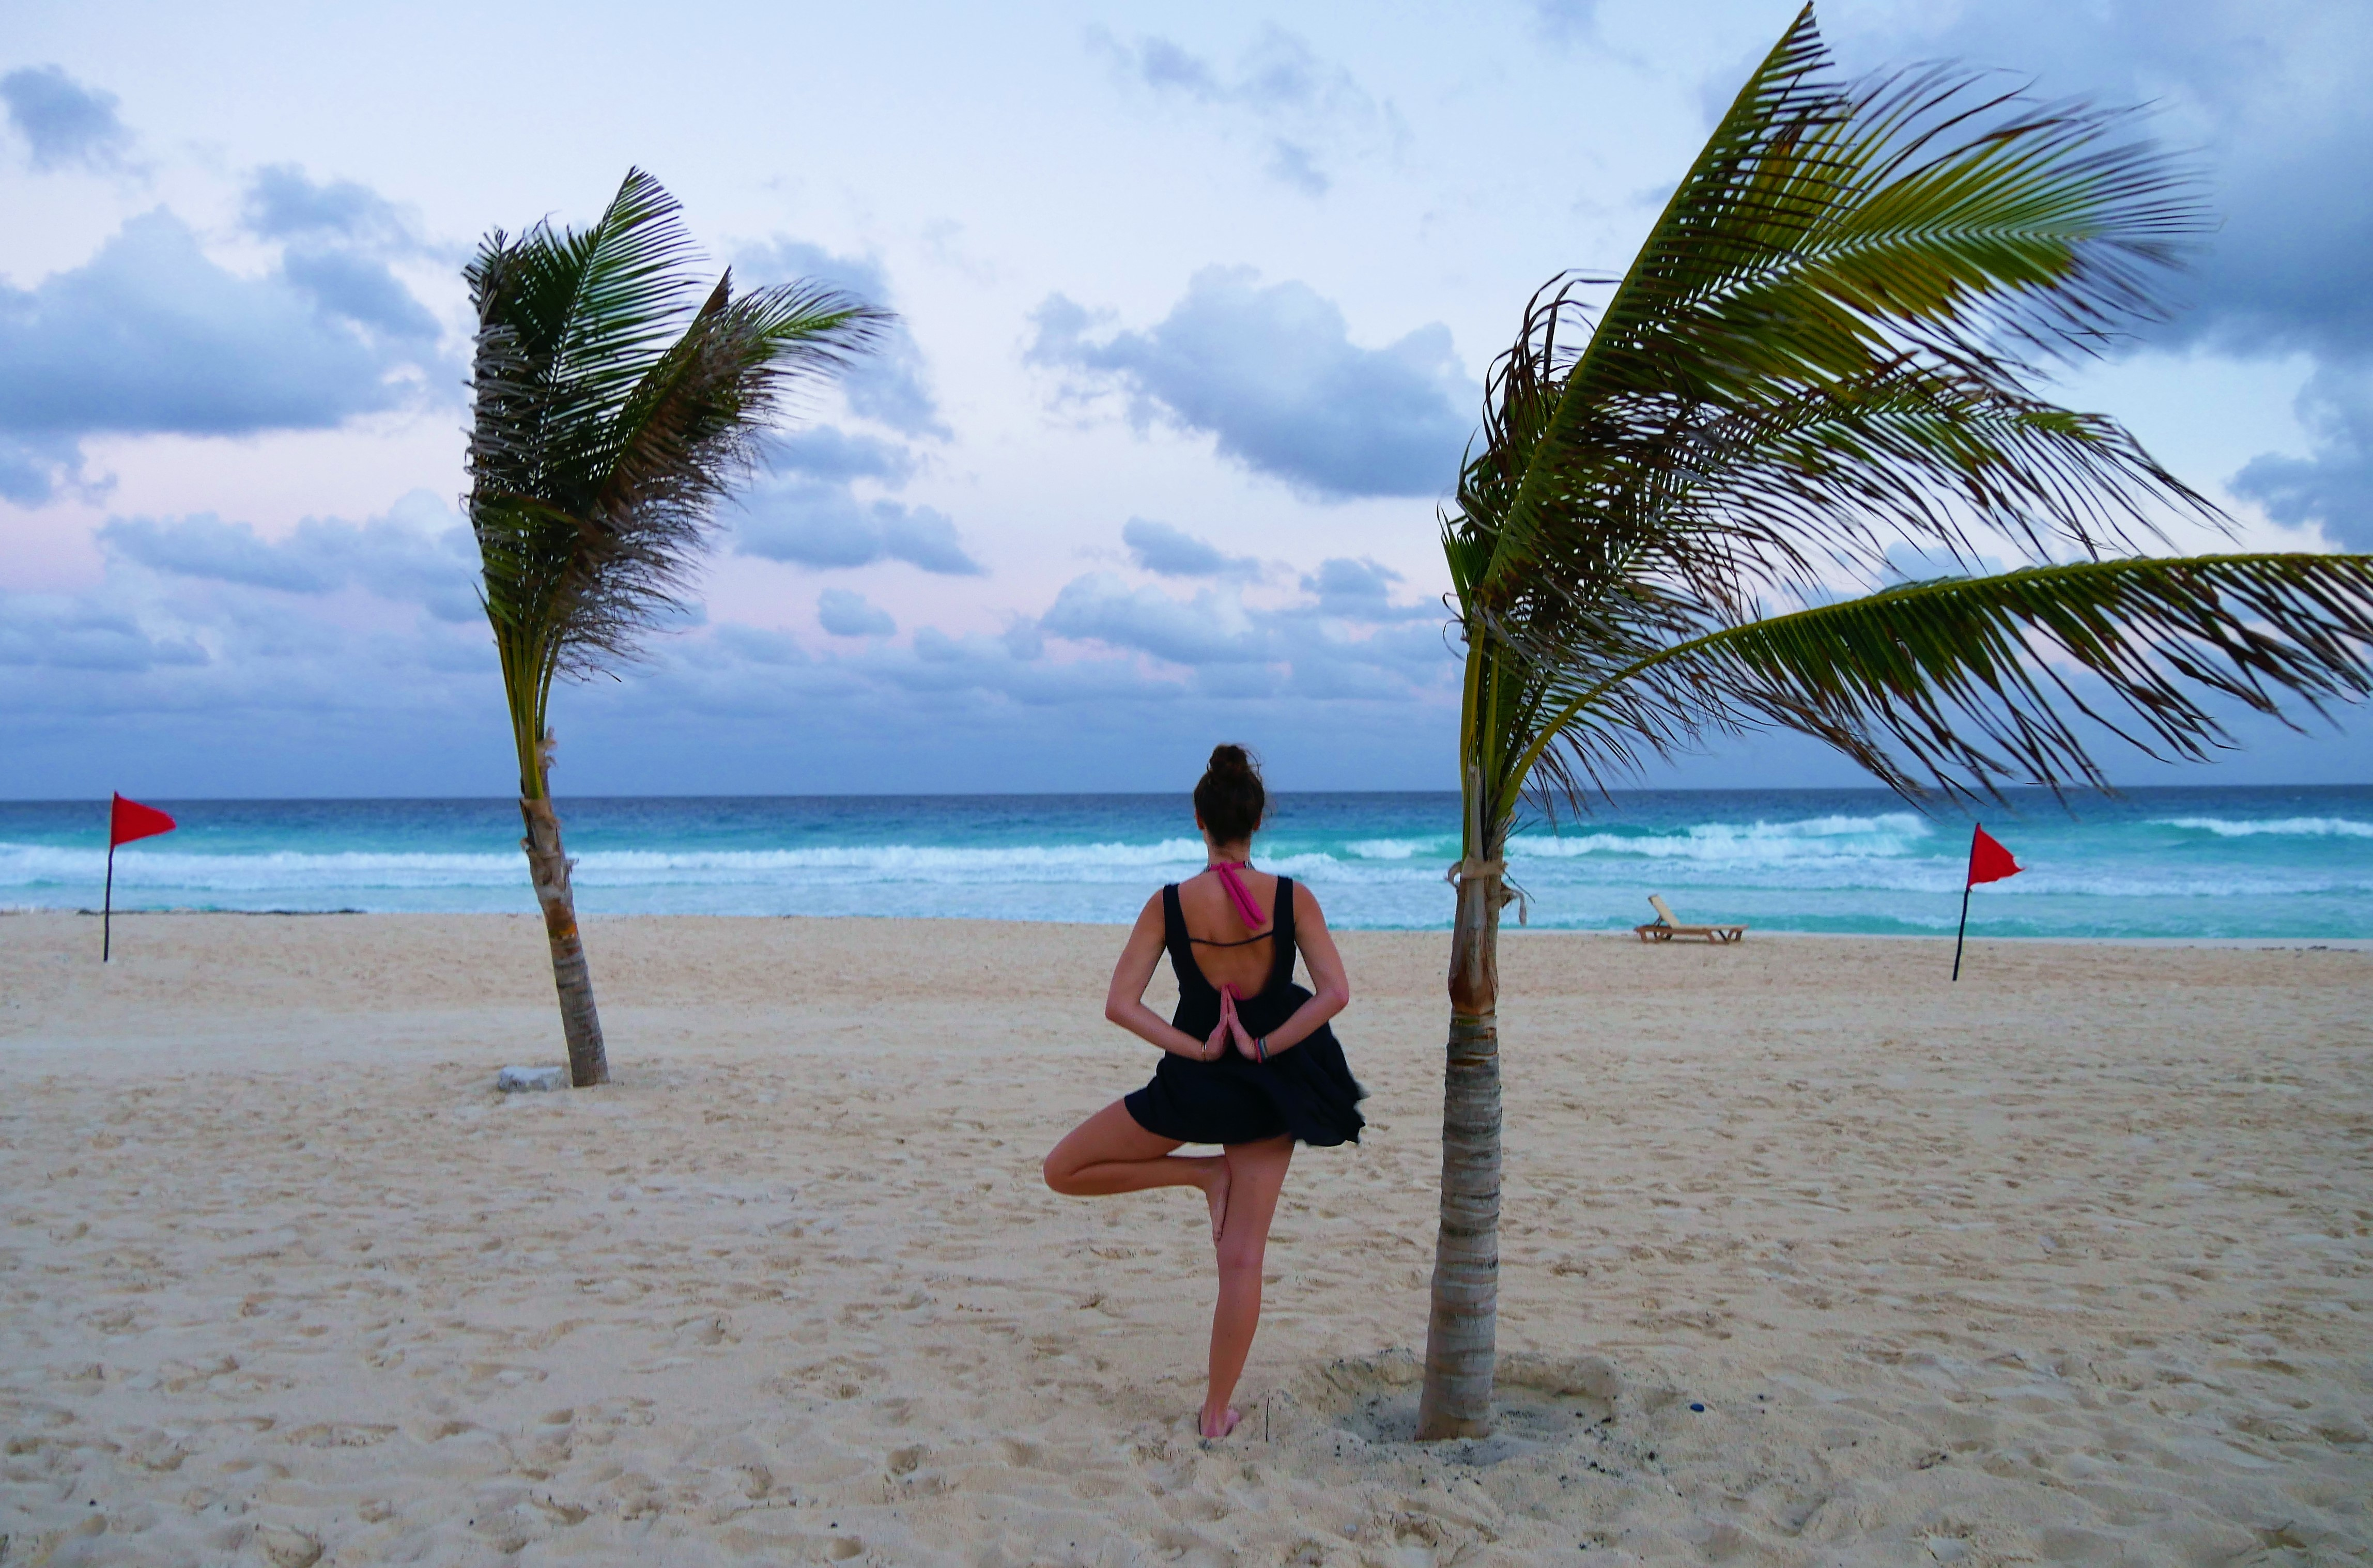 Tree pose on the beach in Cancun, Mexico